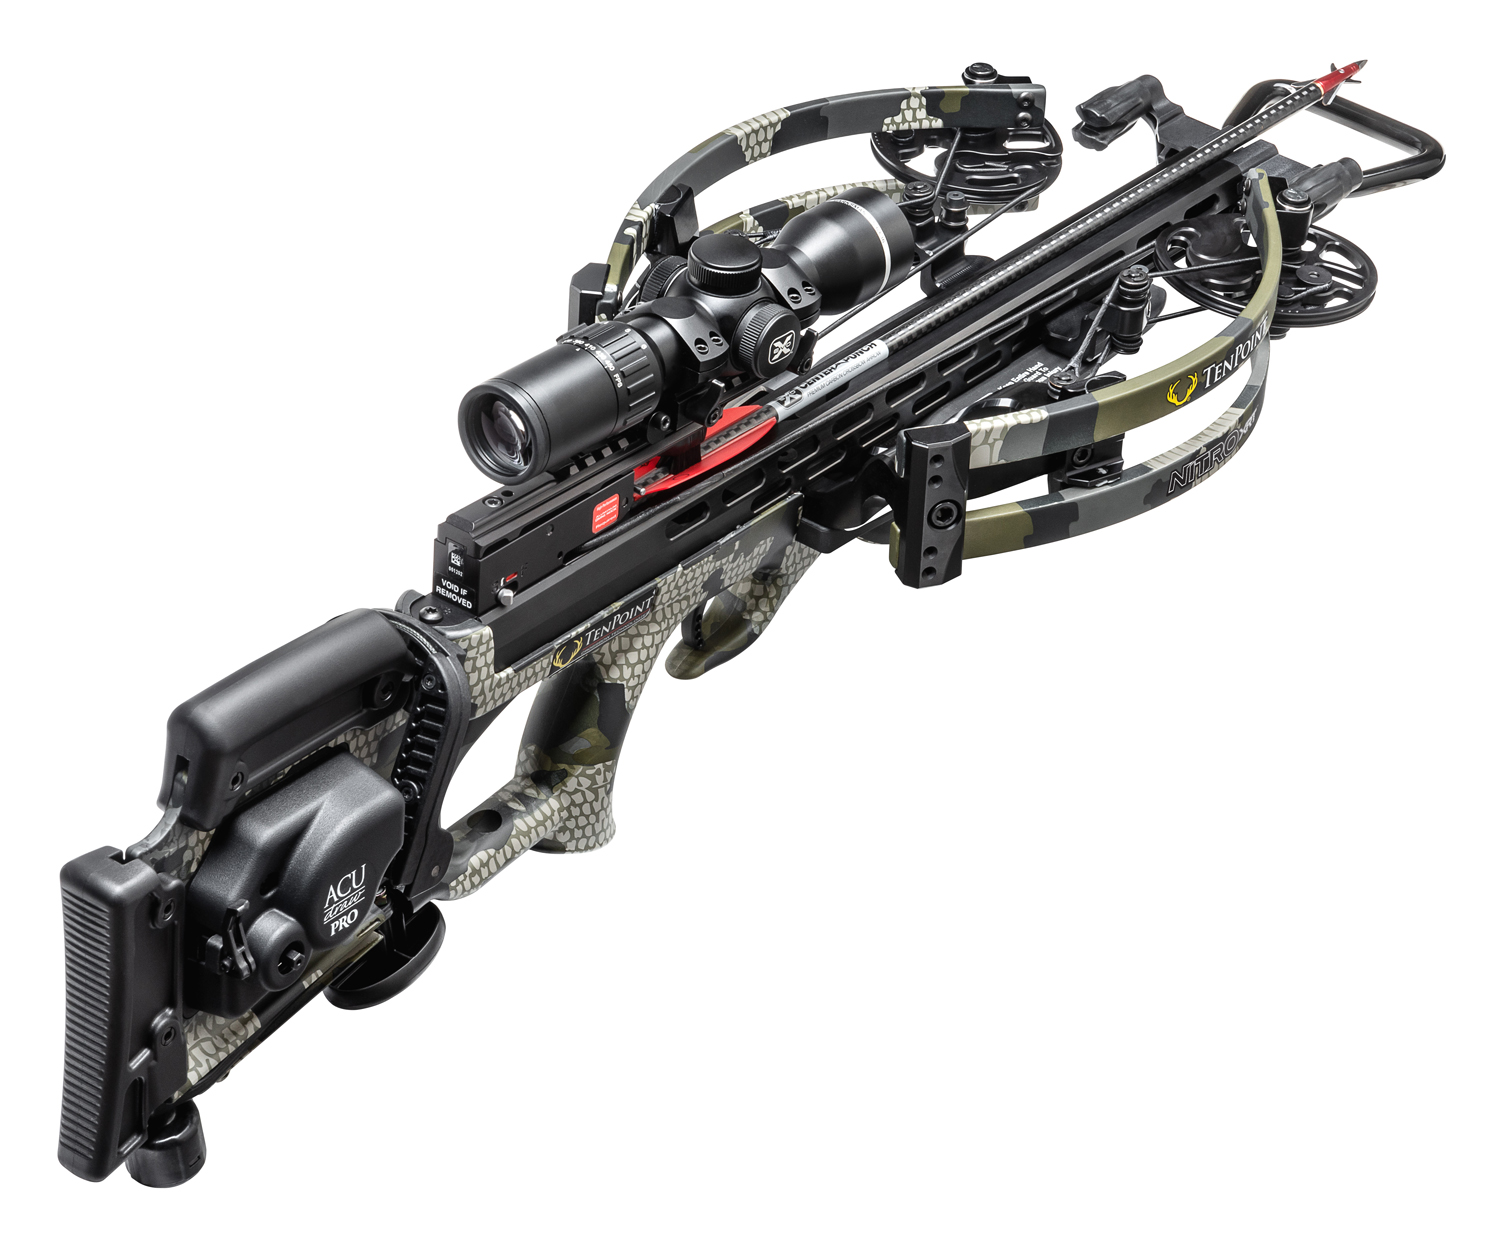 TenPoint_Nitro_XRT crossbow